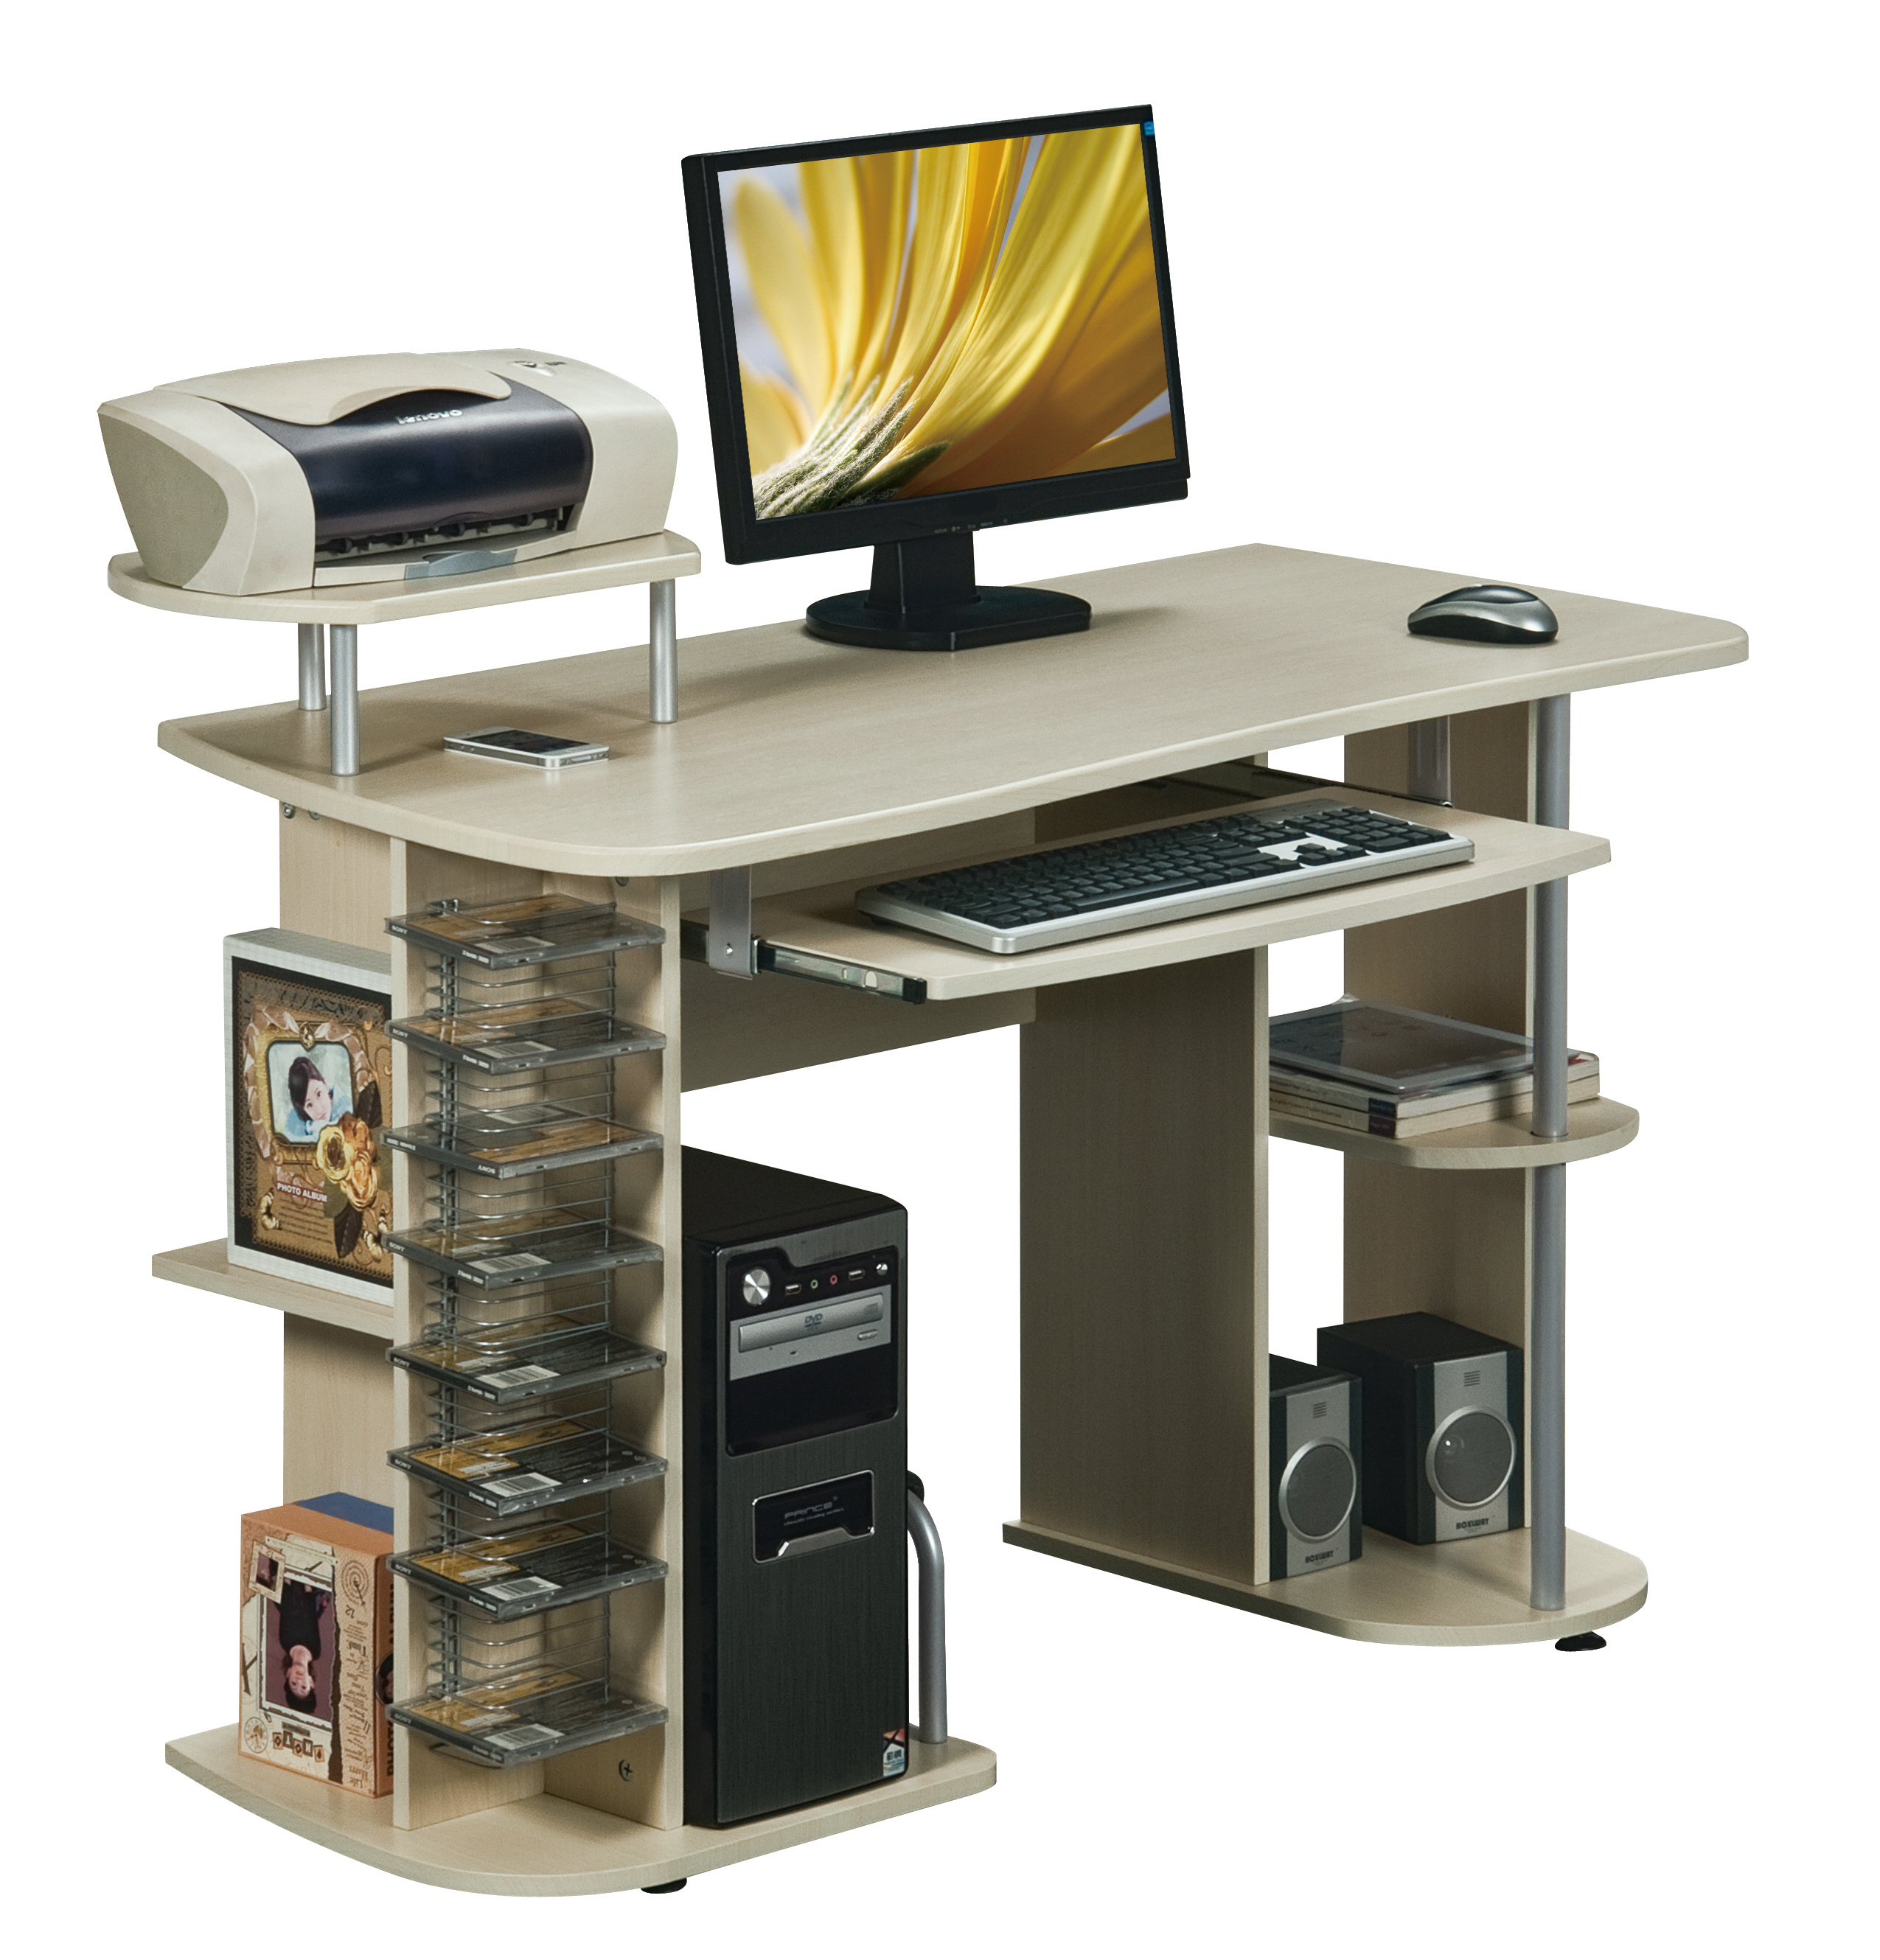 sixbros computer desk workstation work table different colors s 104 ebay. Black Bedroom Furniture Sets. Home Design Ideas